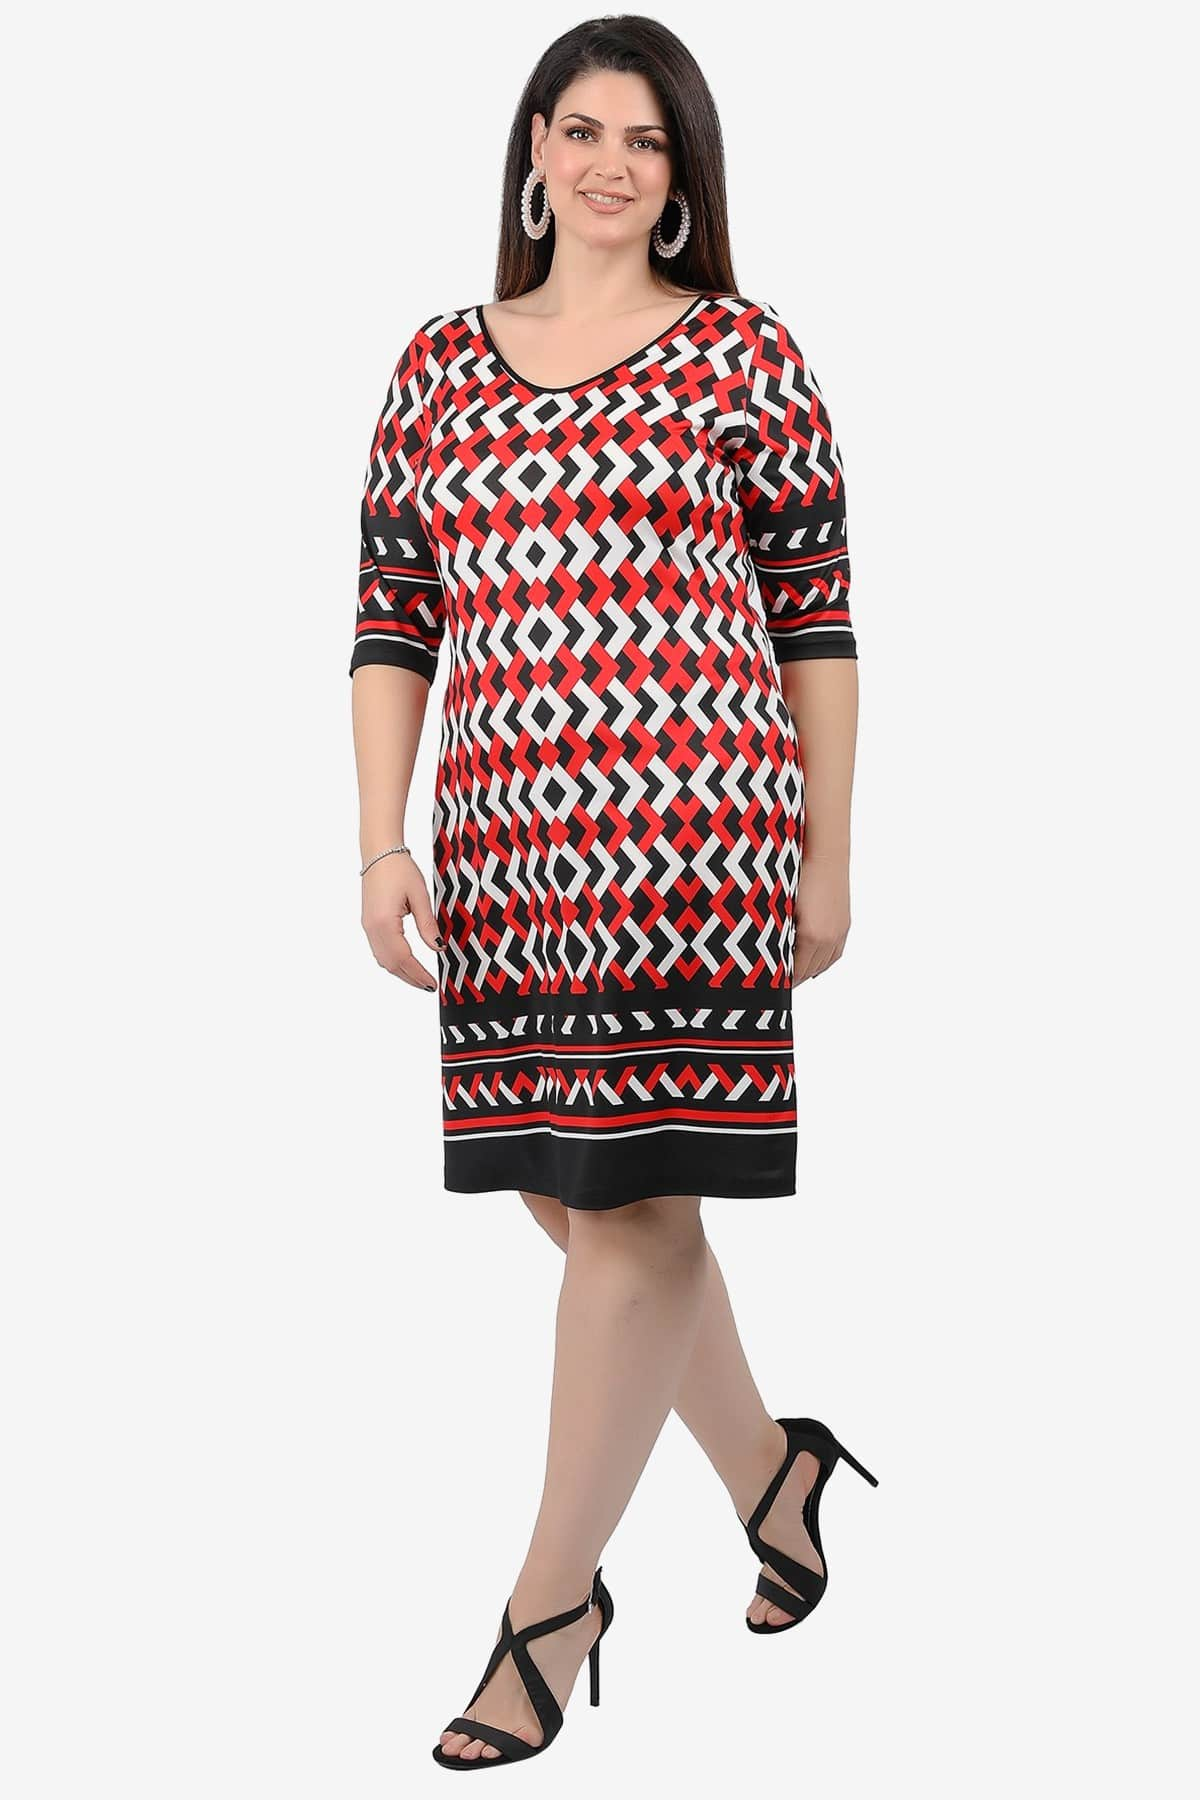 Midi dress in geometric print